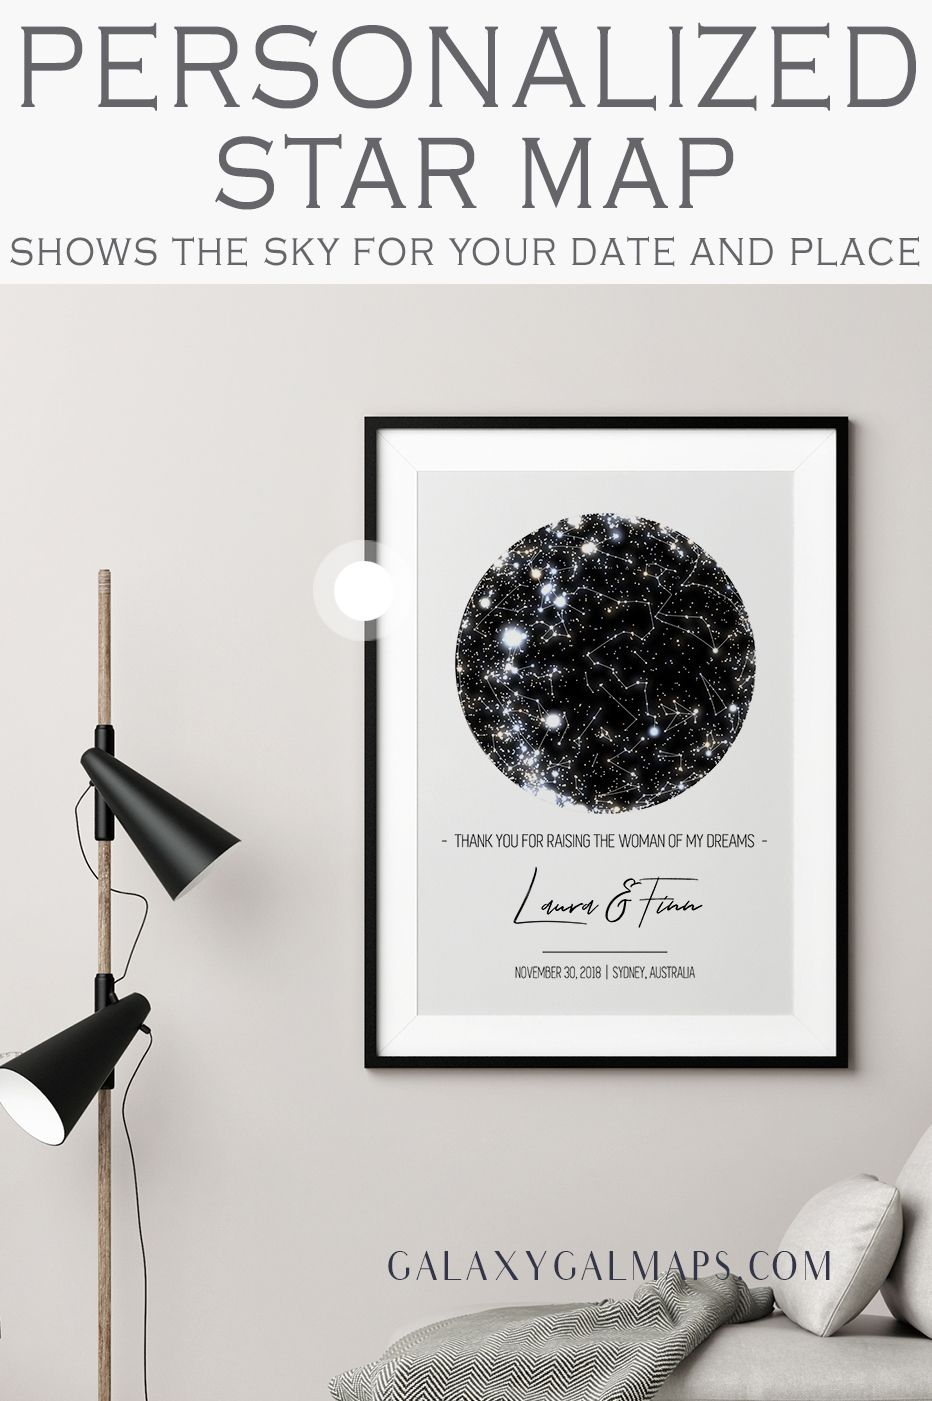 - NOW on Sale! - Get PERSONAL Star Map  - monochrome print, Custom Engagement, Gift For Boss Female, Celestial Wall Art, Custom Nebula Map, Gift For BestieChart Coordinates, Unique Wedding Gifts, Personalize Star Map, Graduation For Son, Great Grandpa Gift, #CustomEngagement #GiftForBossFemale #CelestialWallArt #CustomNebulaMap #GiftForBestieChartCoordinates #UniqueWeddingGifts #PersonalizeStarMap #GraduationForSon #GreatGrandpaGift #grandpagifts